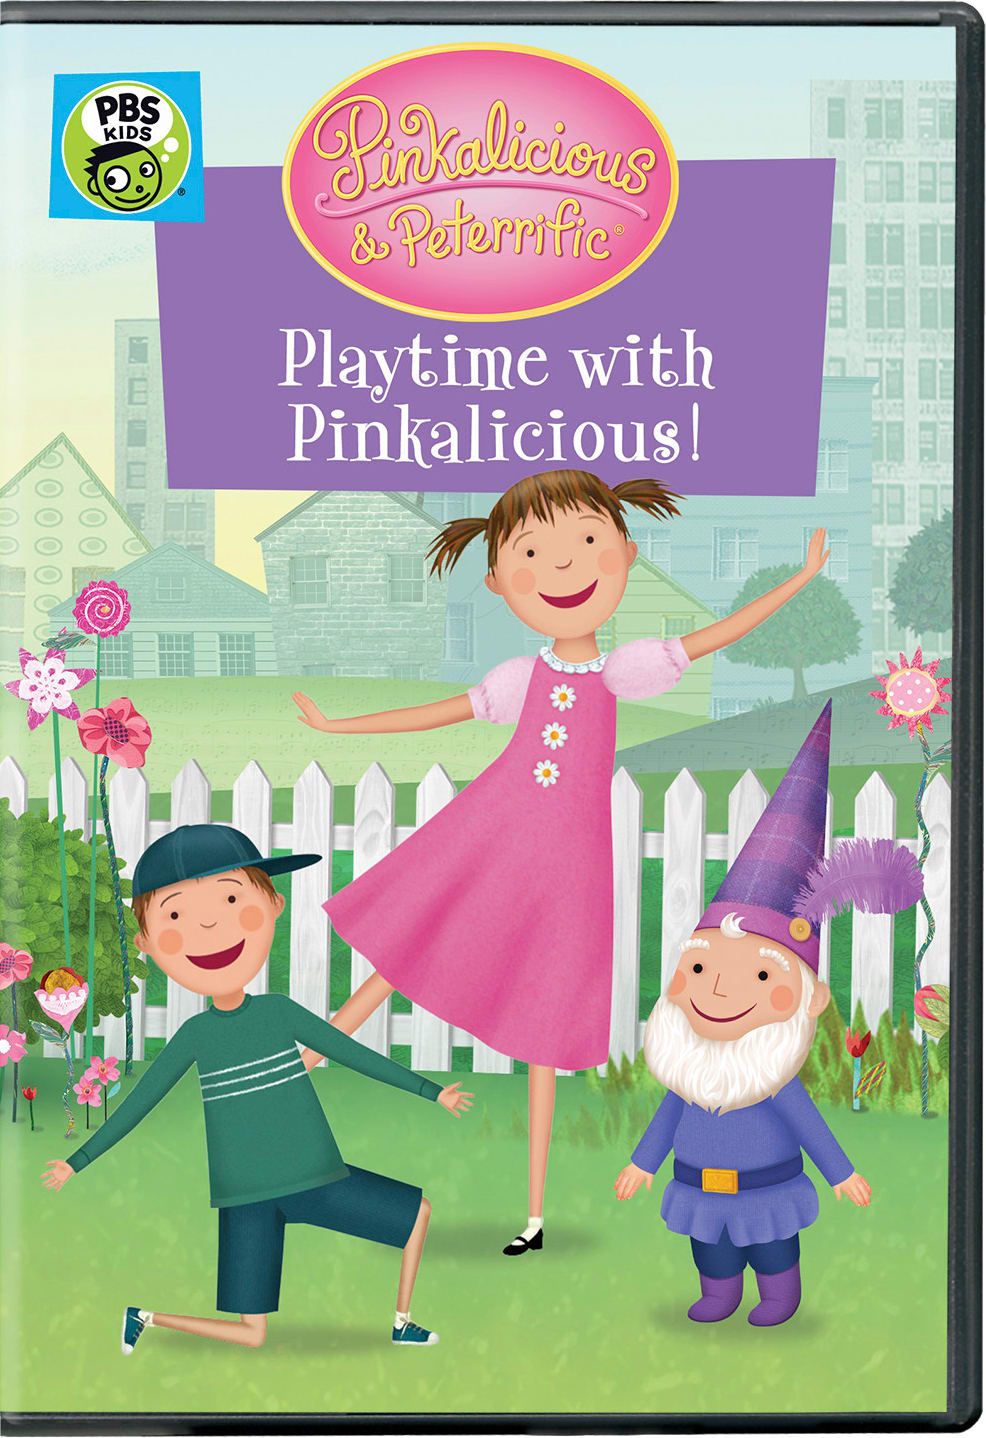 Pinkalicious & Peterrific: Playtime with Pinkalicious! [DVD]